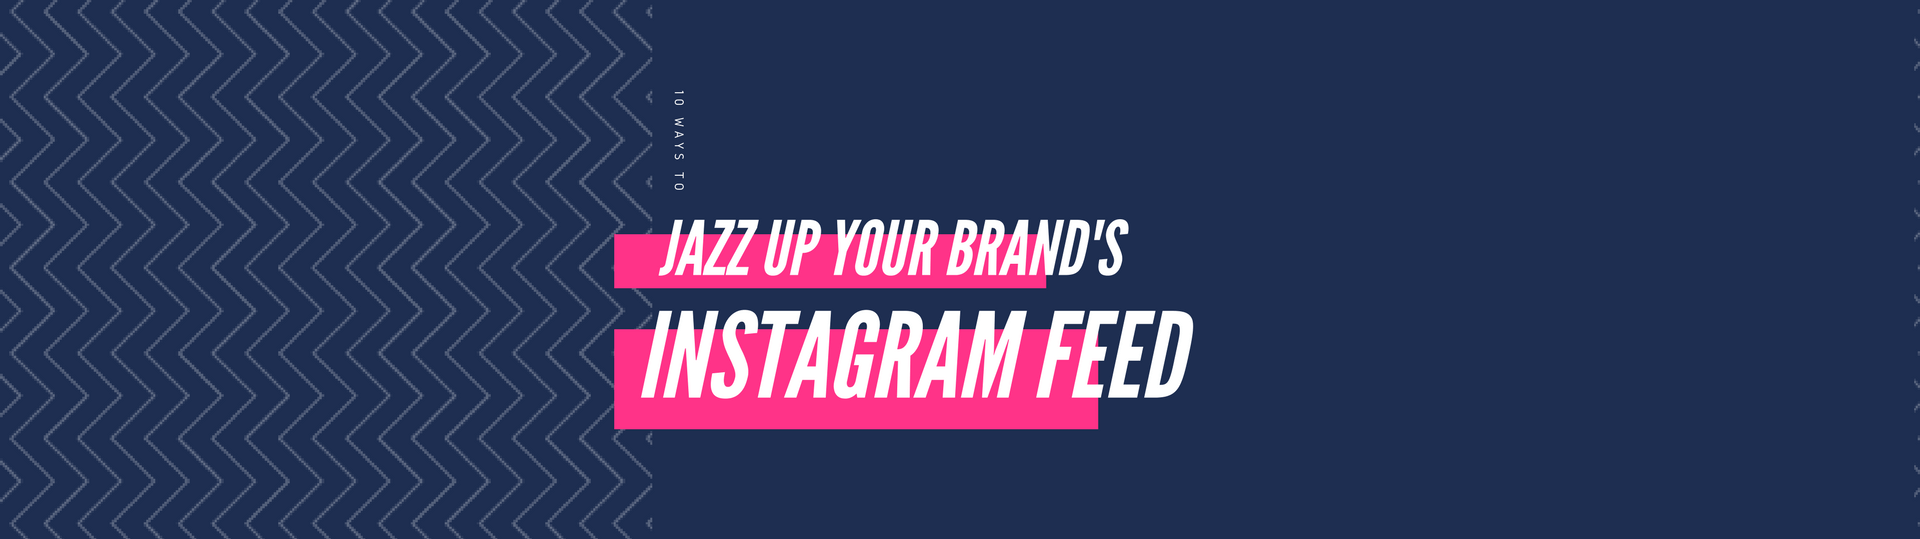 10 Simple Ways to Instantly Jazz Up Your Brand's Instagram Feed_1